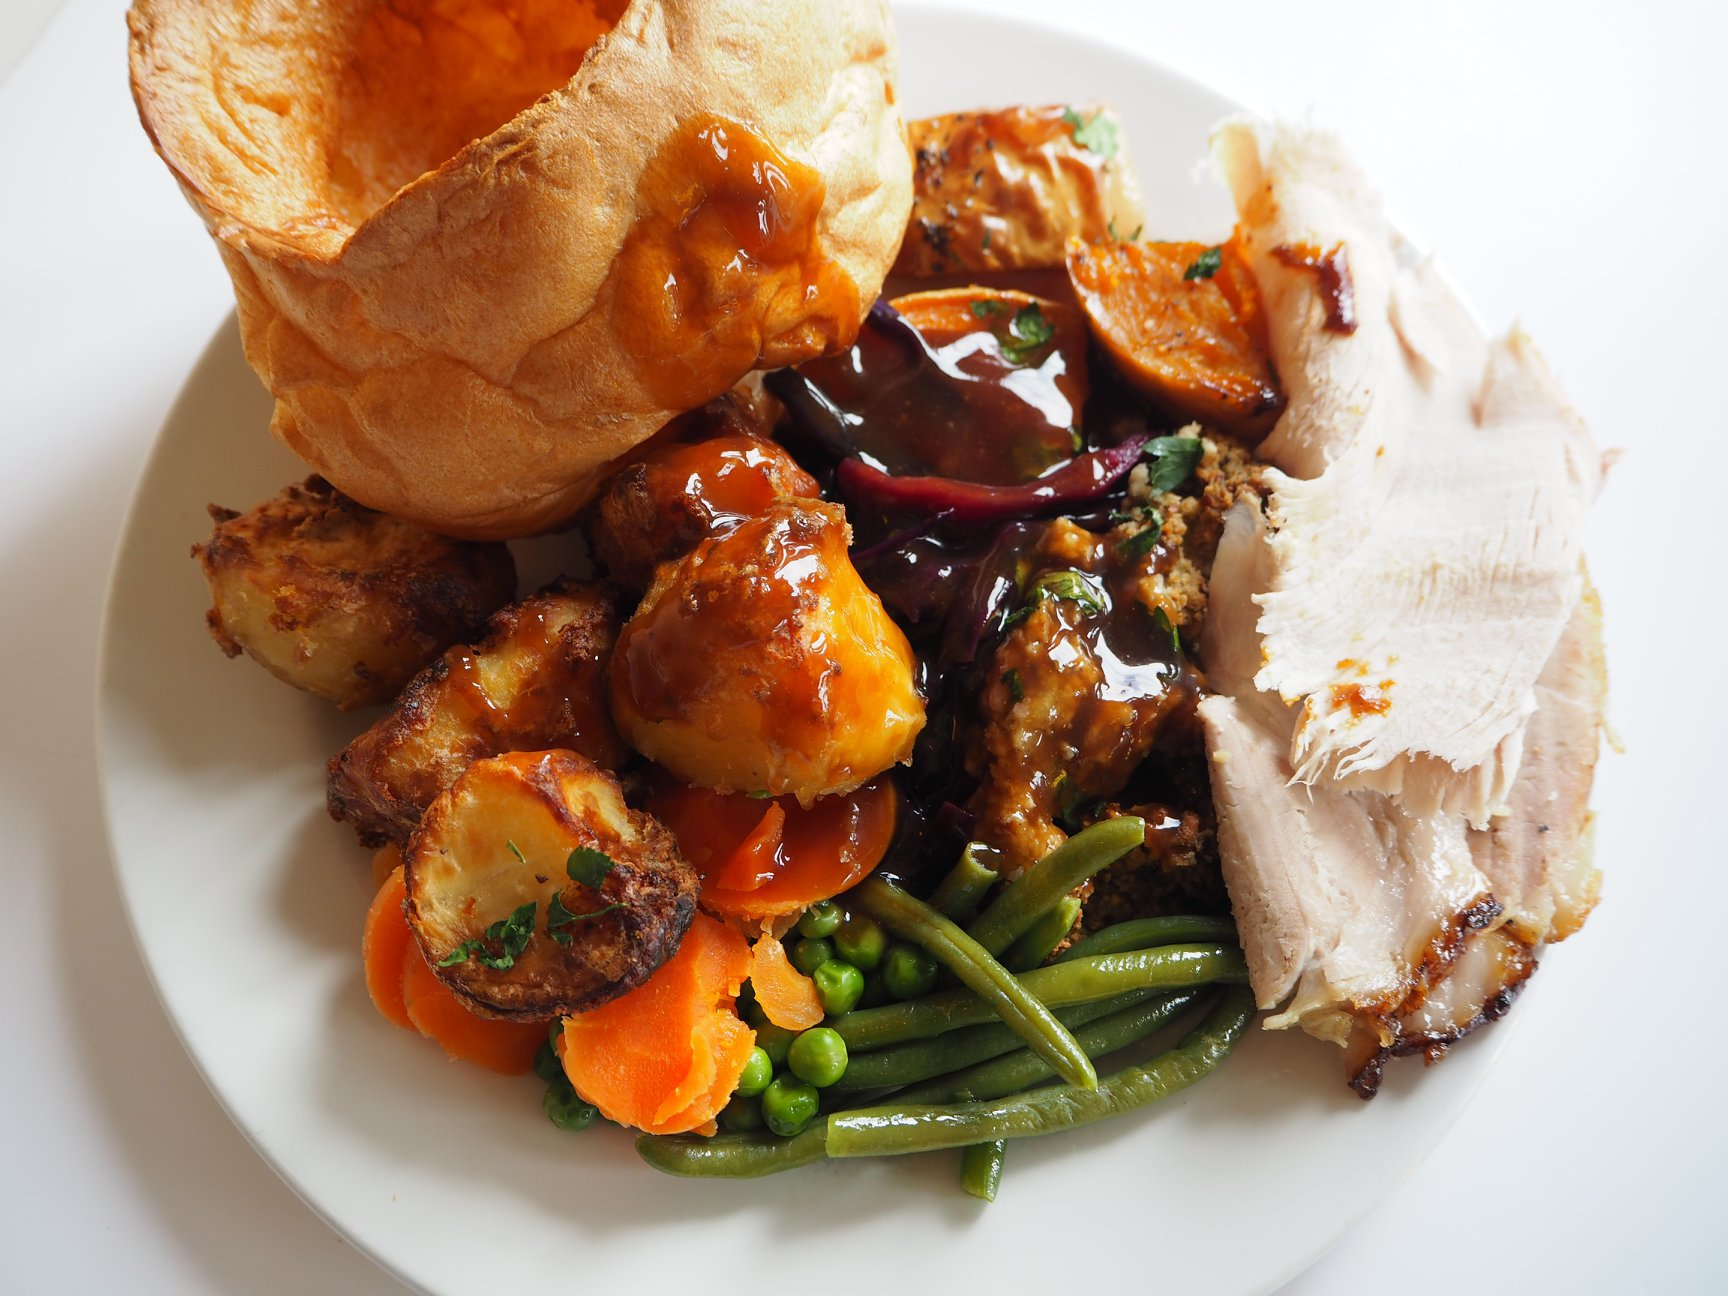 You can now order a Toby Carvery roast dinner online